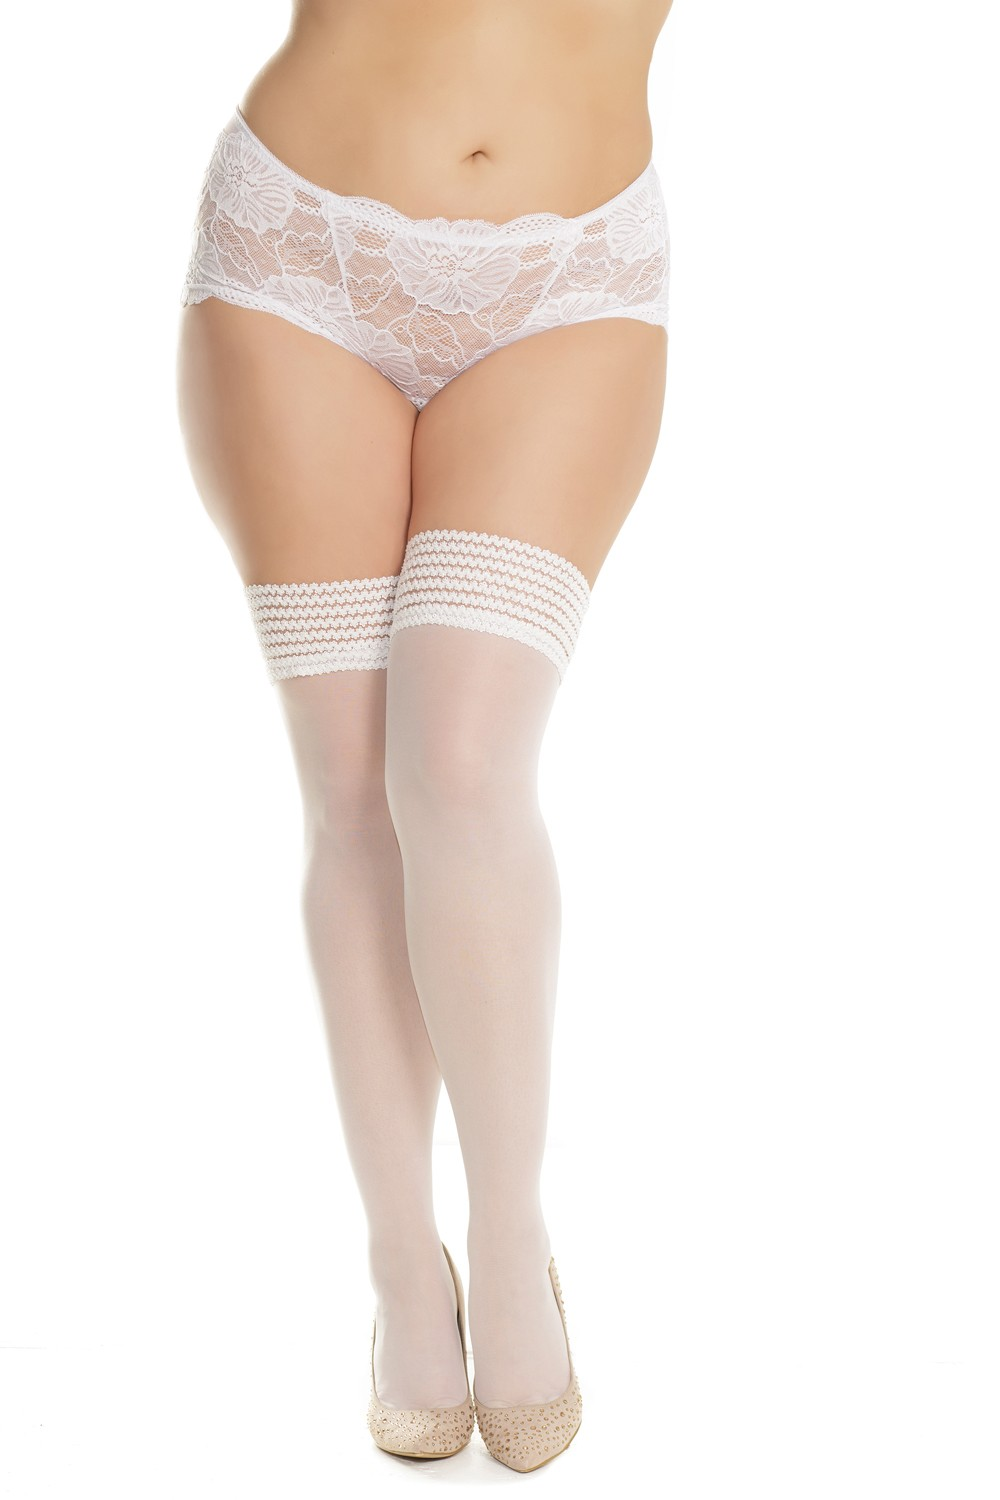 Sheer stay-up stockings floral elastic top 1906 Edmonton